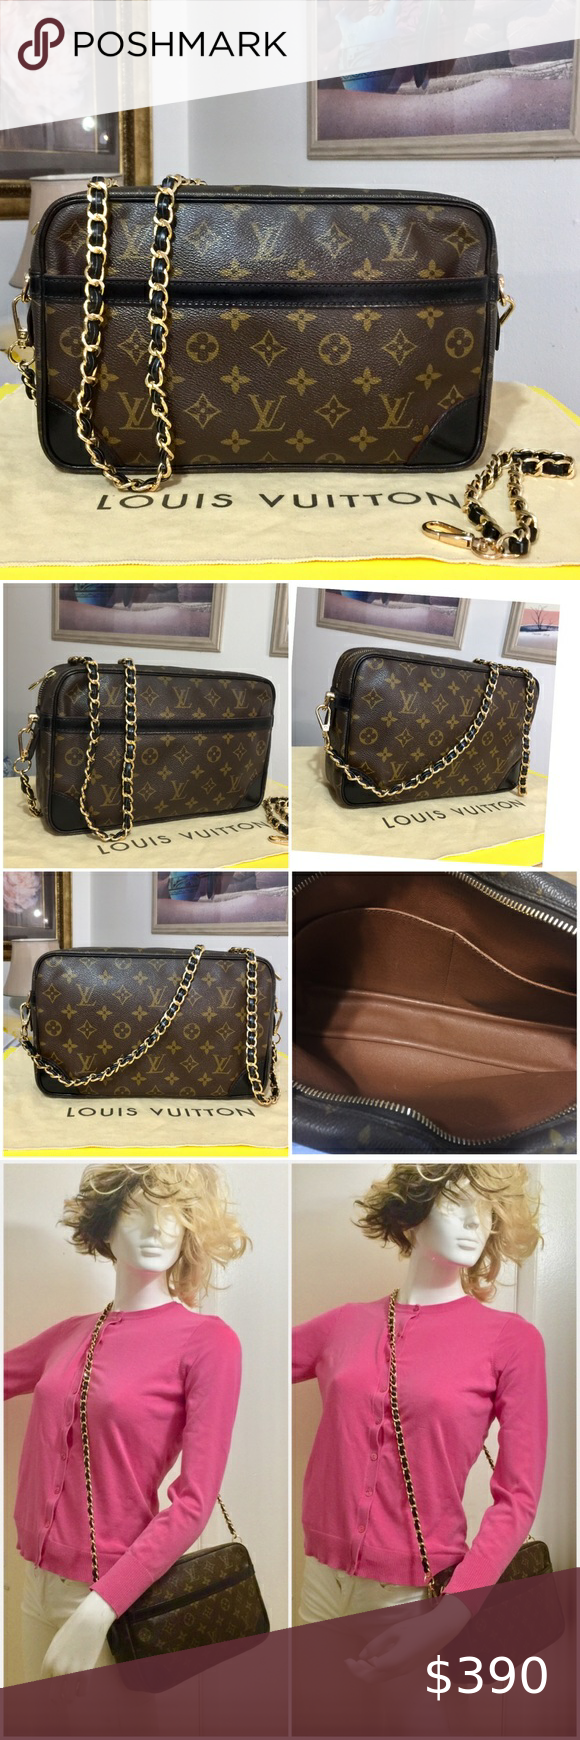 Louis Vuitton Compiegne 28 Shoulder Bag 💼 SL0812 Very good condition  Authentic LV Compiegne clutch bag Converted to Shoulder/Crossbody. Dyed leather trims in Black color. Date code: SL0912; France 🇫🇷 Gold strap:  47@long and 8mm thickness Size: 11 x 2.5 x 6 Condition: Monogram canvas in very good shape; interior compartment is clean and no foul odor;pockets sticky linings were removed and cleaned; slightly tarnished hardware;zipper works perfectly;minor scratches on leather trims; COMES WIT: